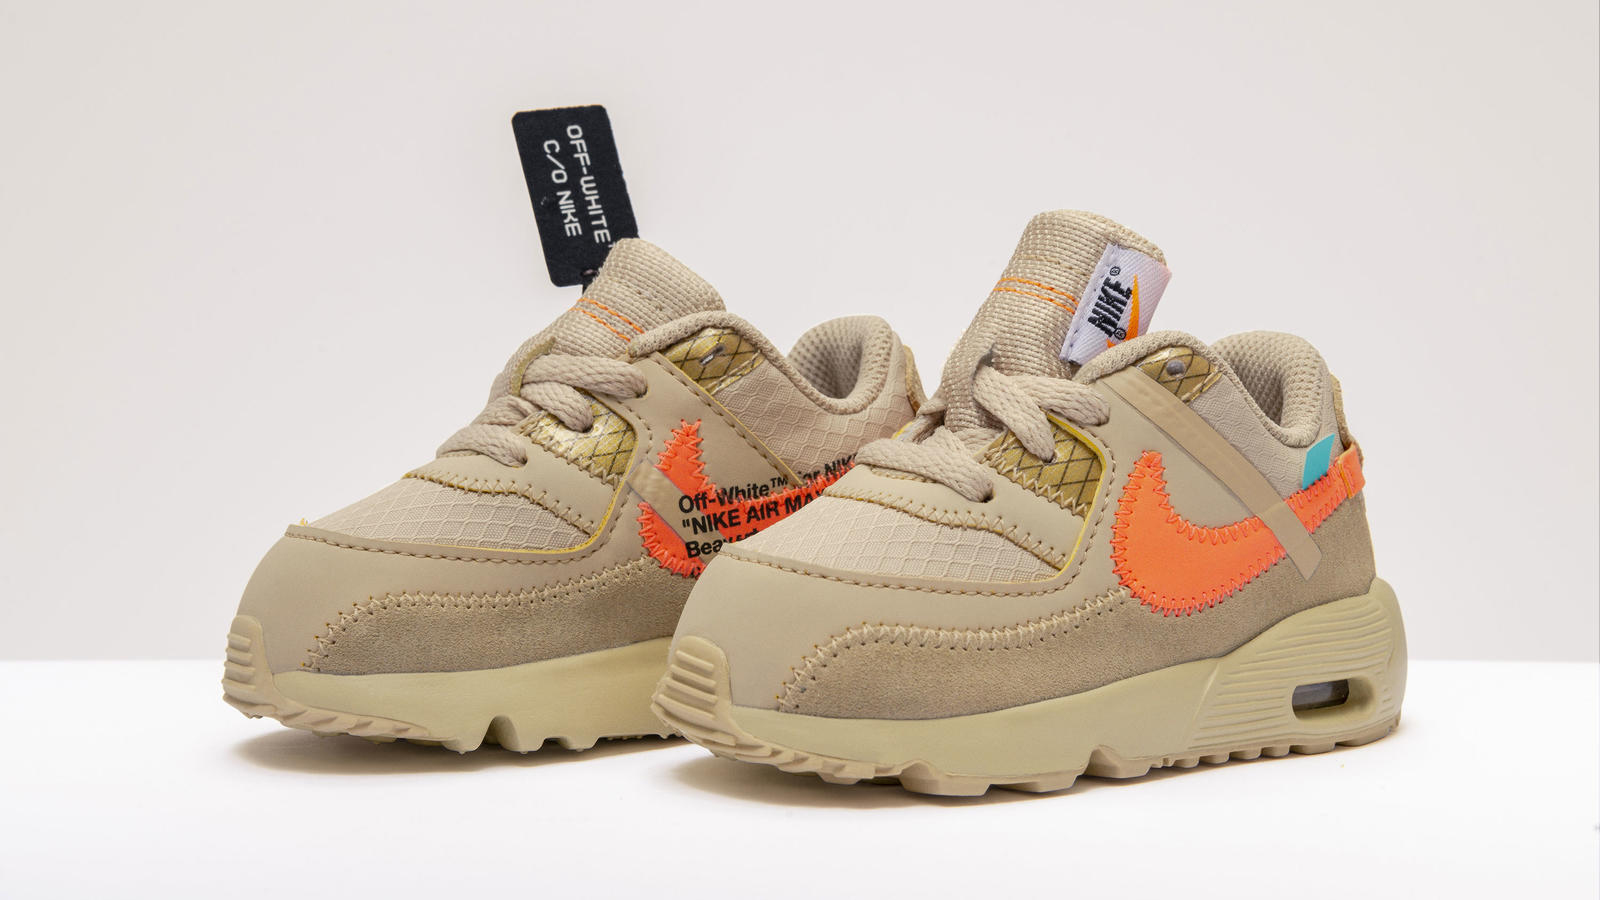 b9566e67b283b OFF-White Nike Air Max 90 Kids Sizes - Nike News